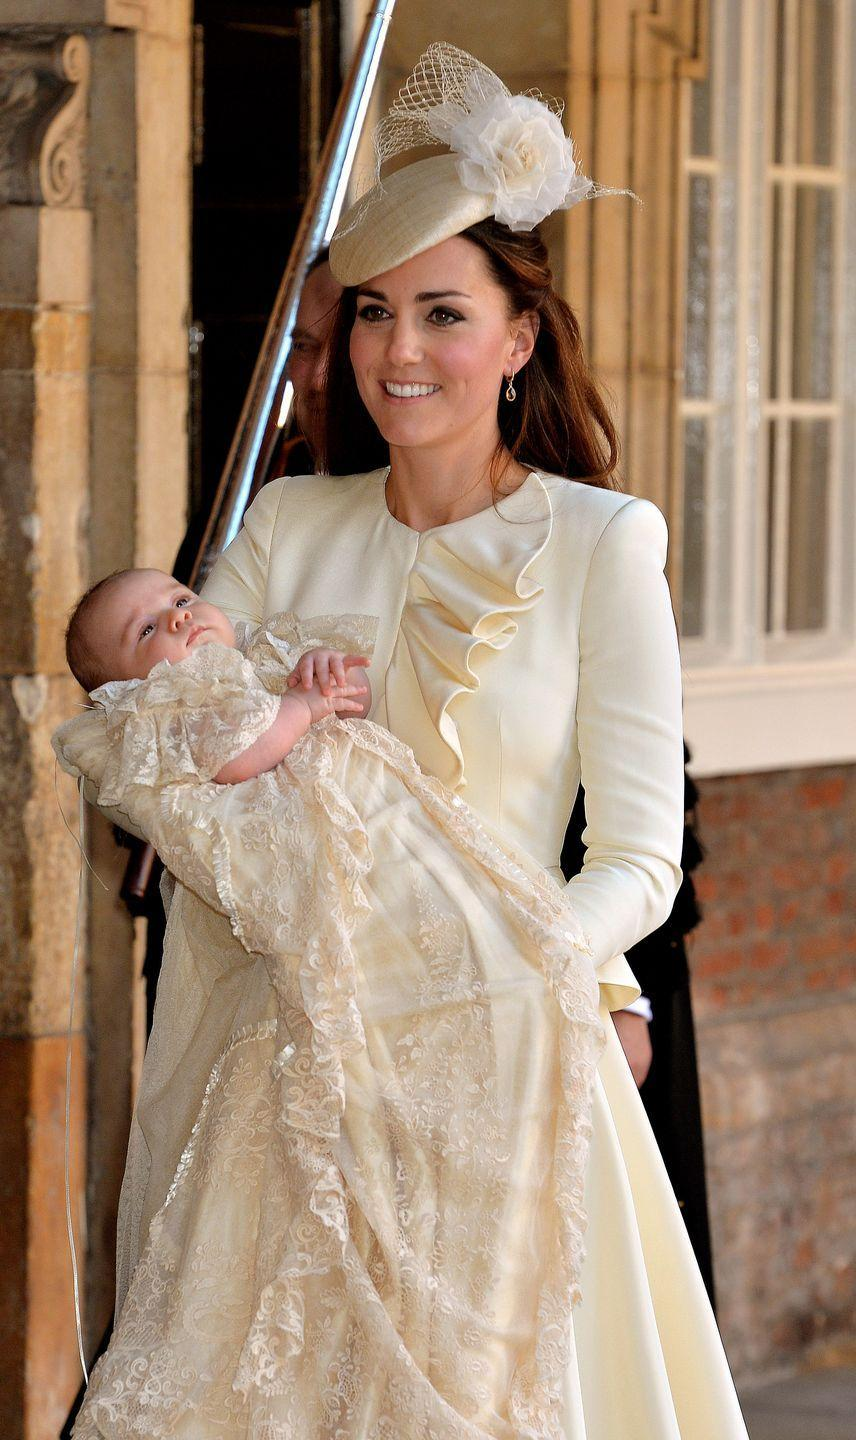 <p>For George's christening in at St. James's Palace in London, Kate first wore this cream-colored Alexander McQueen dress with ruffled detailing down the bodice. </p>